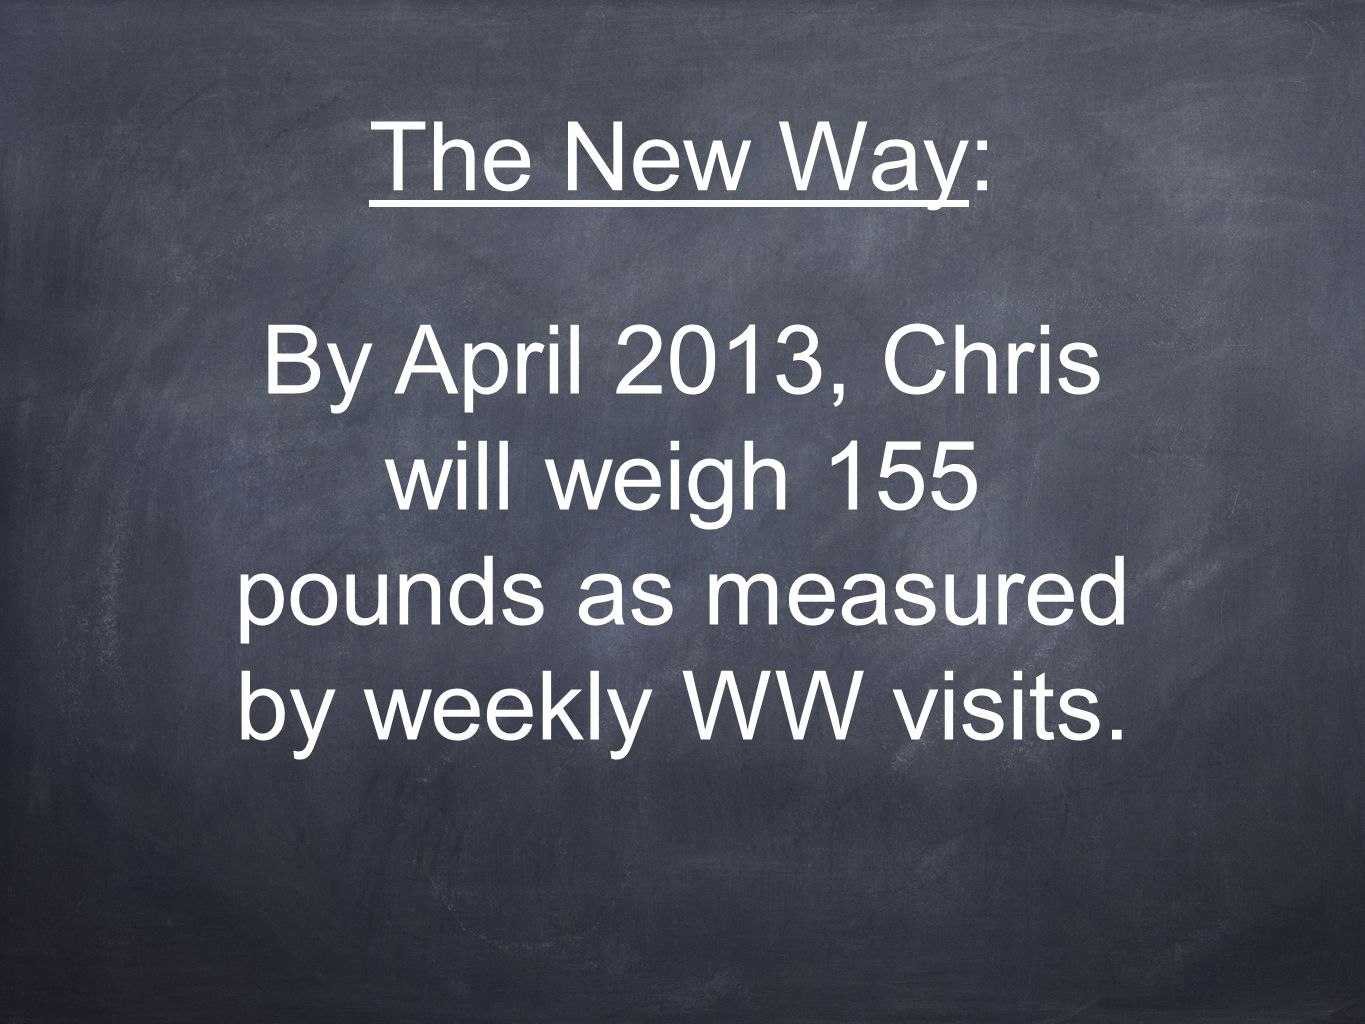 The New Way: By April 2013, Chris will weigh 155 pounds as measured by weekly WW visits.